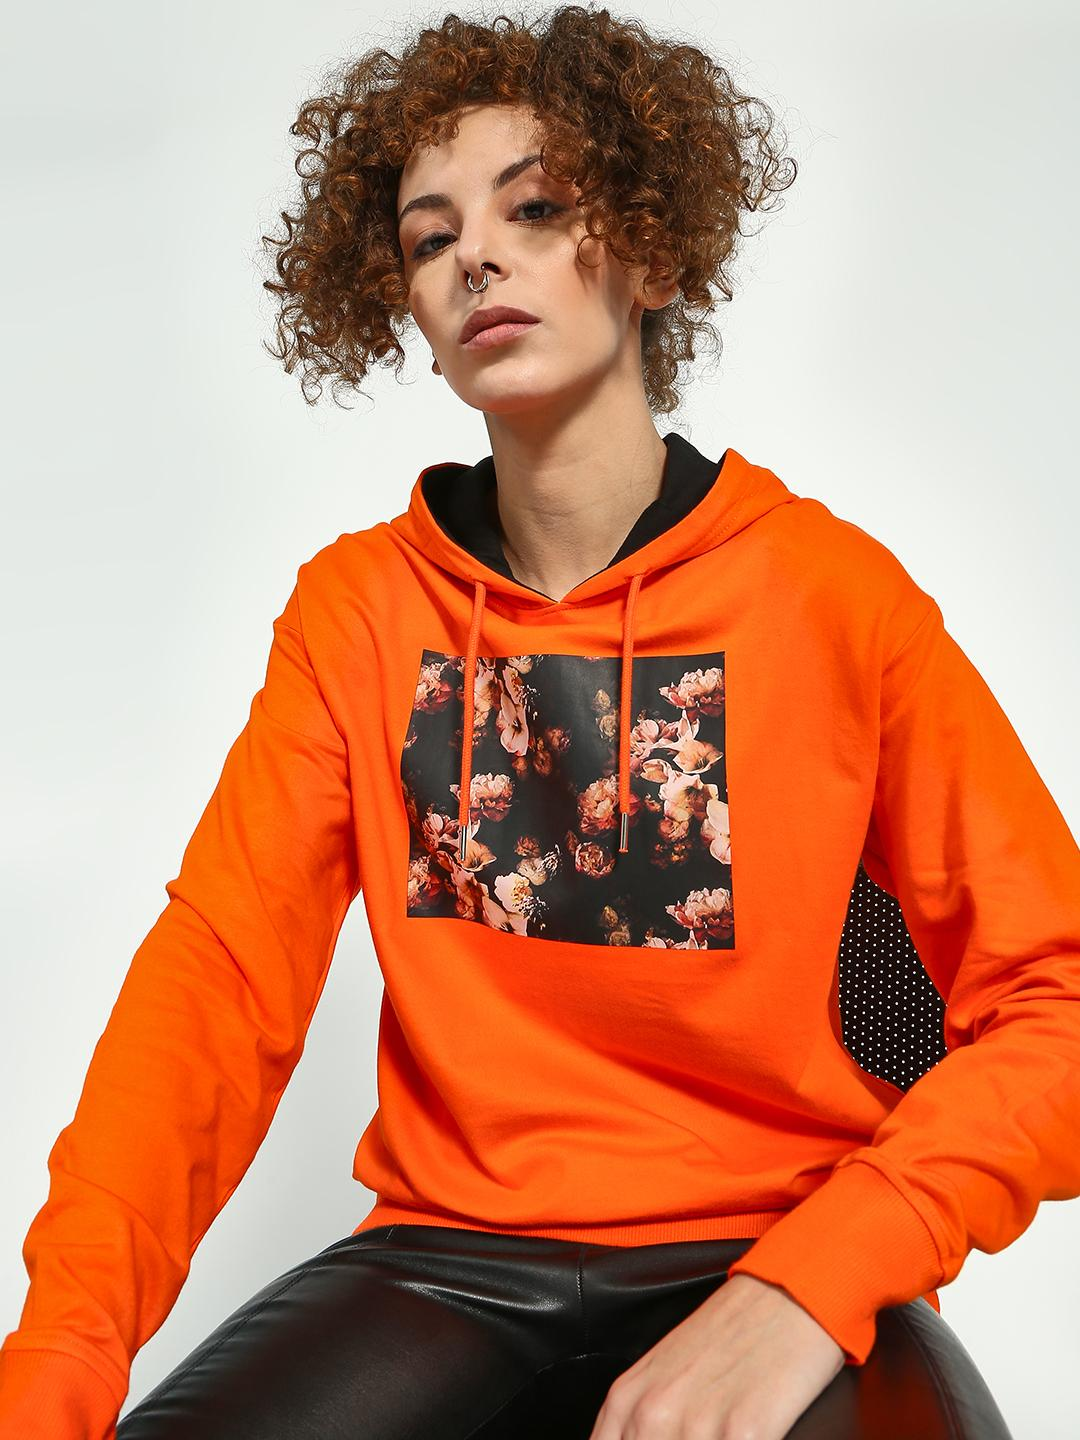 Blue Saint Orange Floral Printed Sweatshirt 1